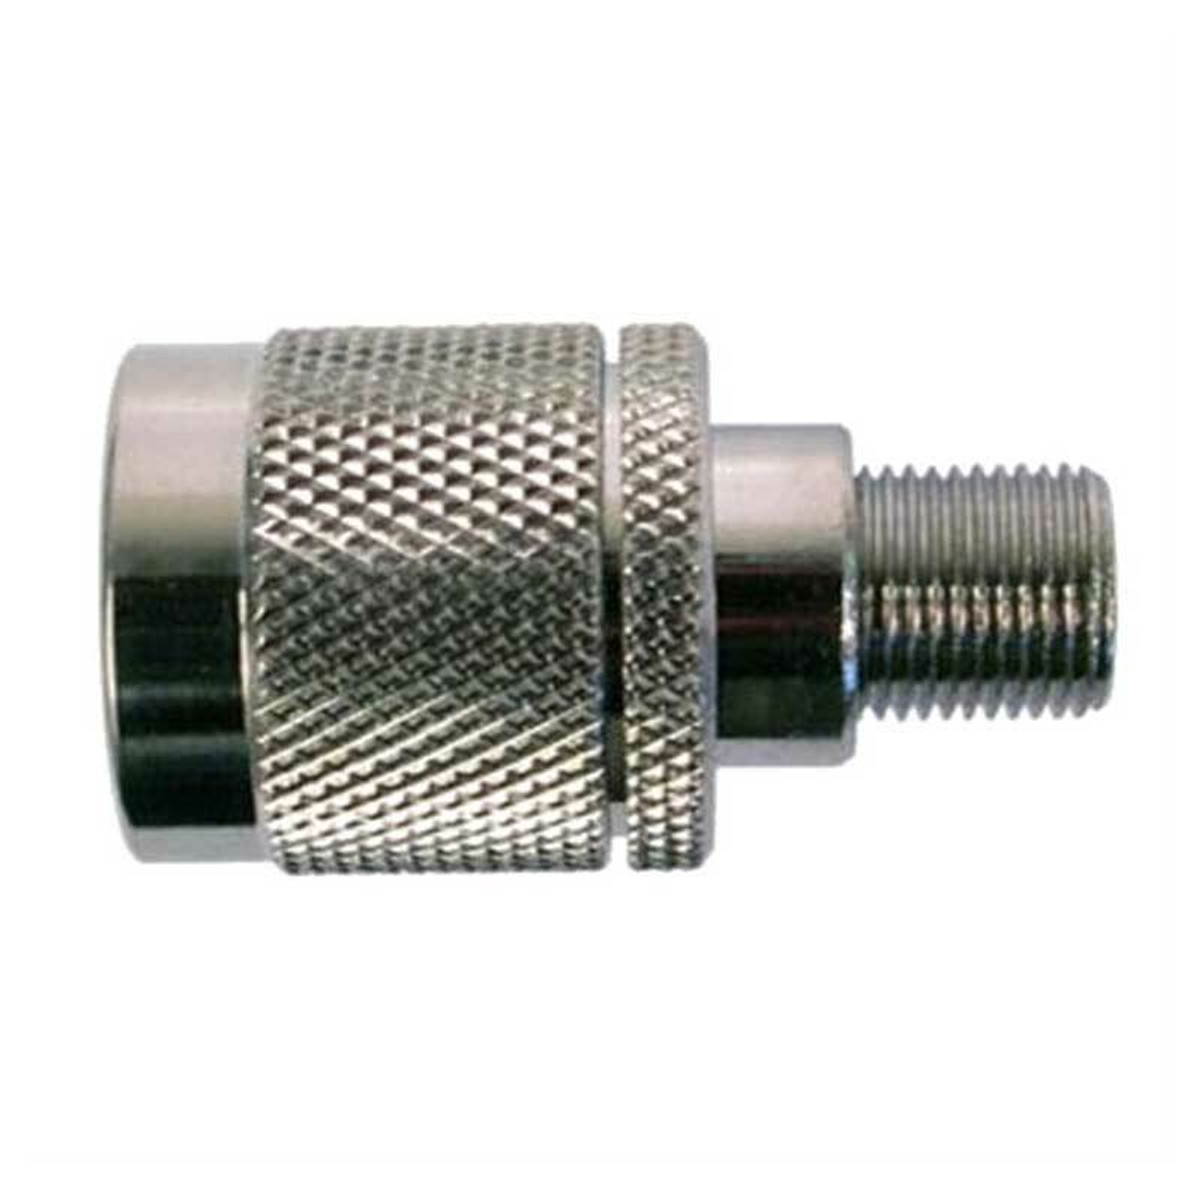 Wilson Electronics weBoost Wilson 971128 N-Male to F-Female Connector